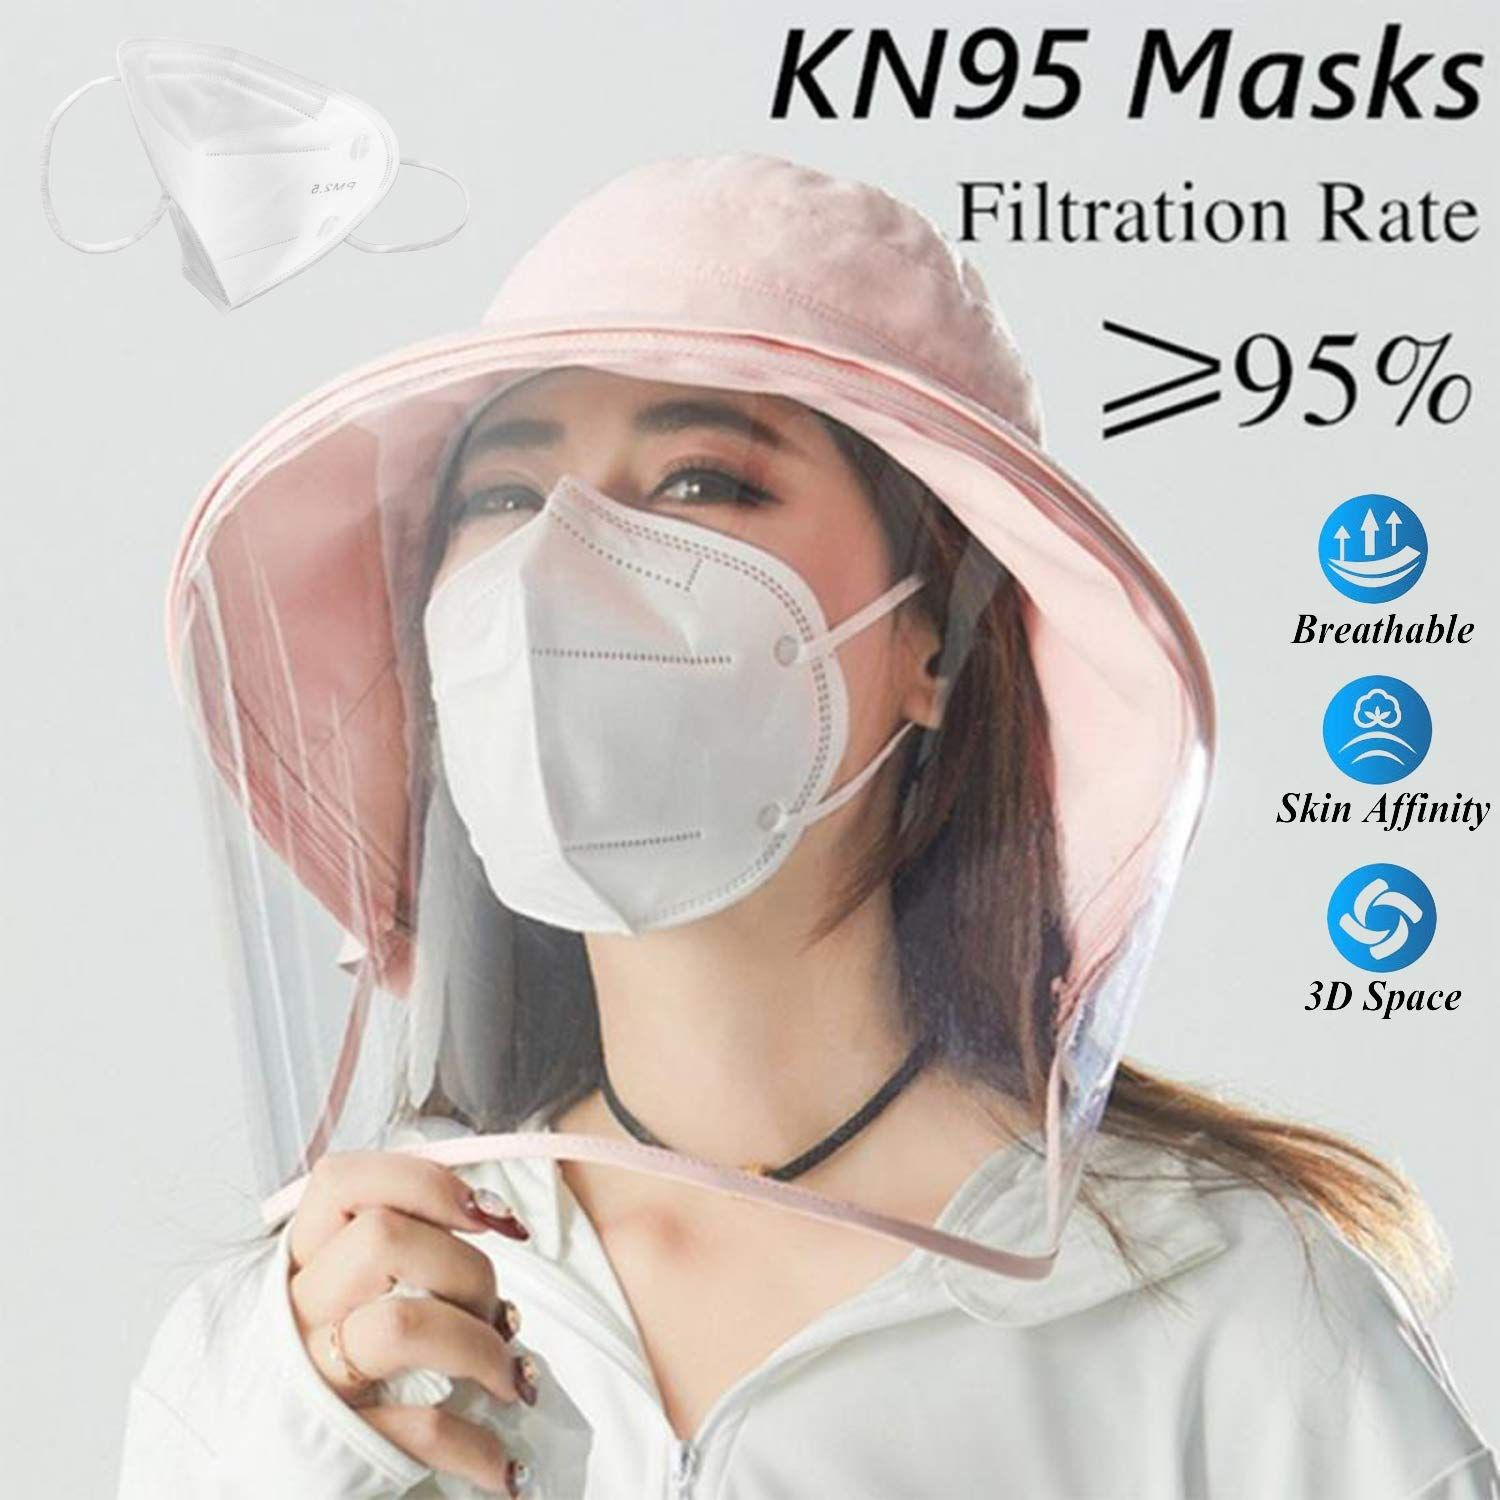 KN95 Masks Anti PM2.5 Activated Carbon Filter Protective Filter ...